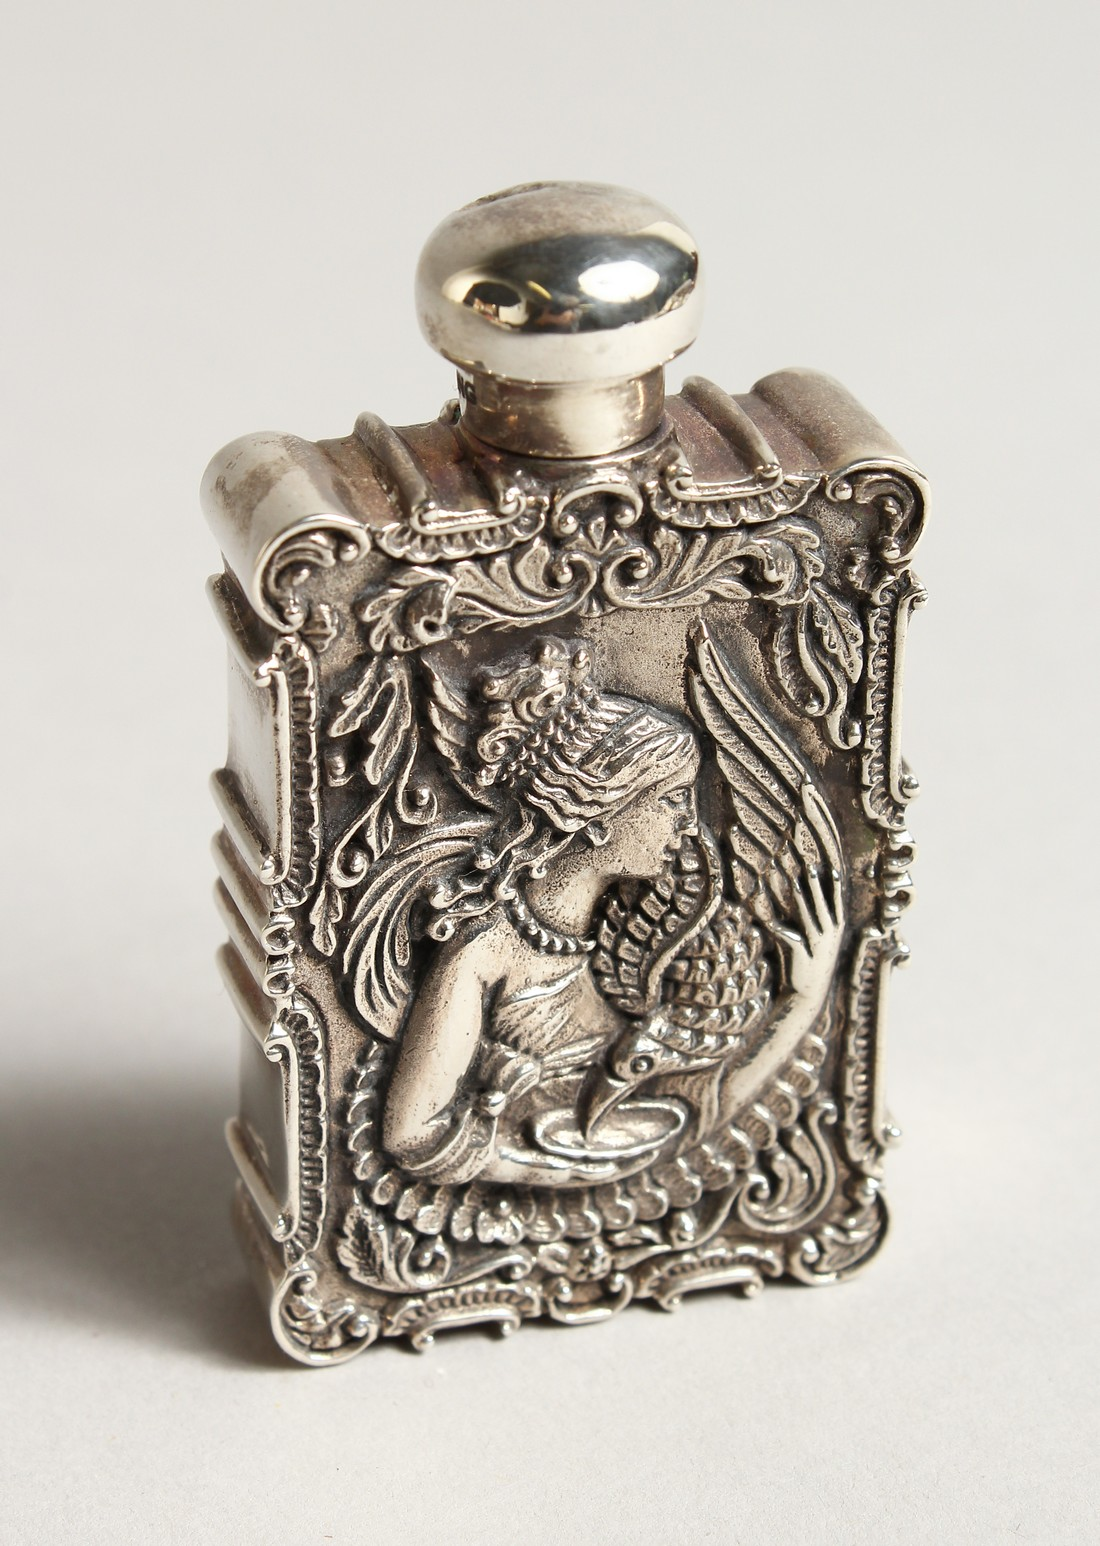 A ST. ANDREWS SOLID SILVER AND ENAMEL LEDA AND SWAN PERFUME PERFUME BOTTLE 2.5ins long